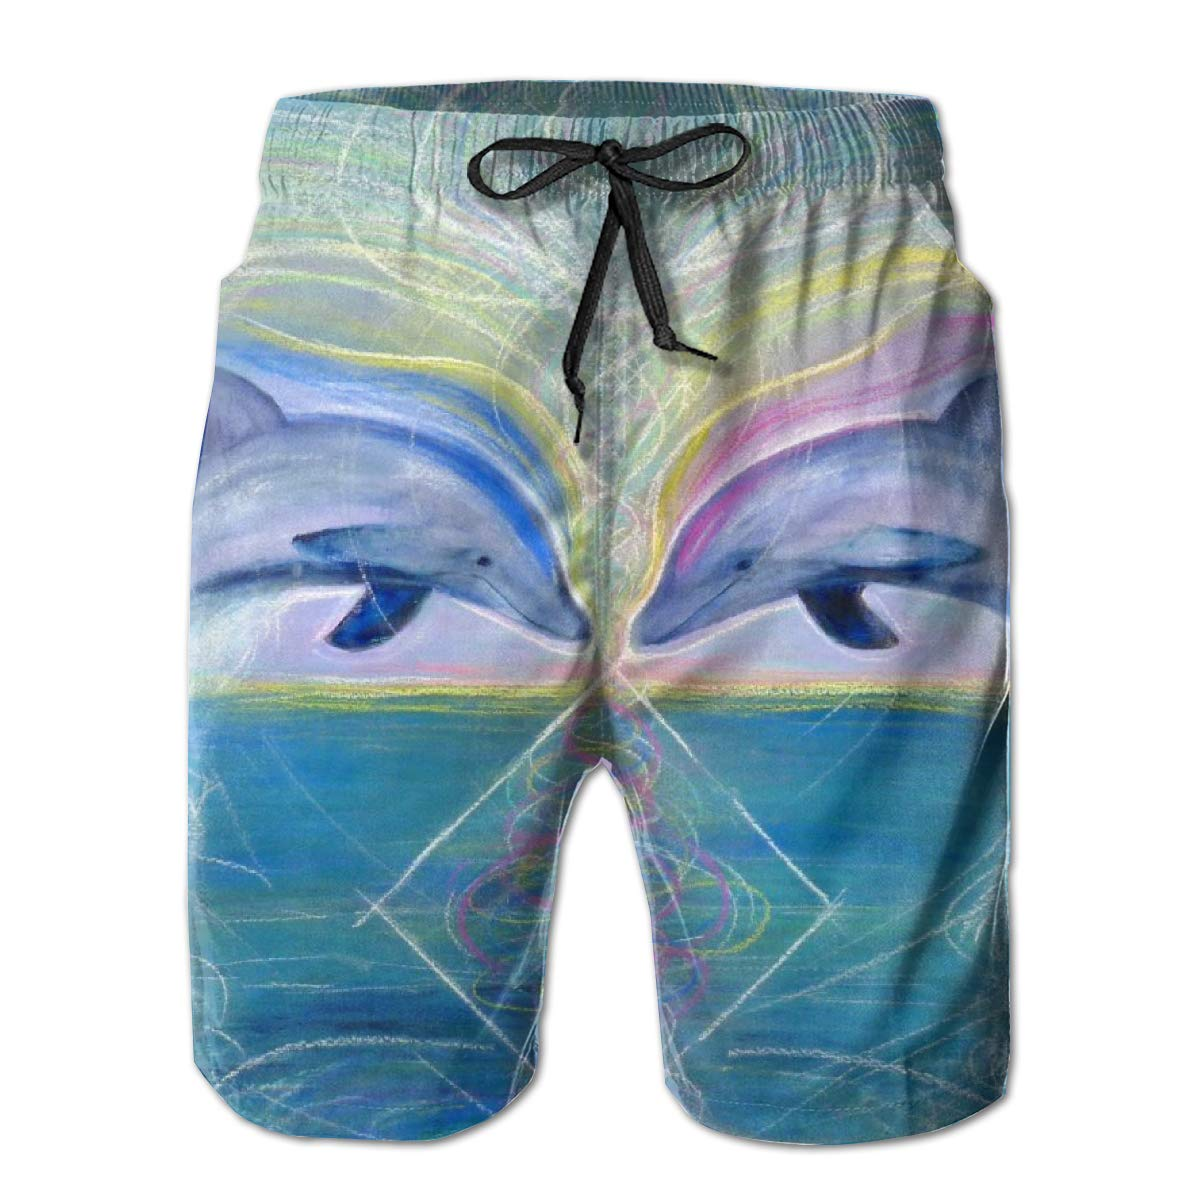 Mens Swim Trunks with Mesh Lining Pockets Kissing The Dolphins Rainbow Boys Polyester Board Shorts Swimwear